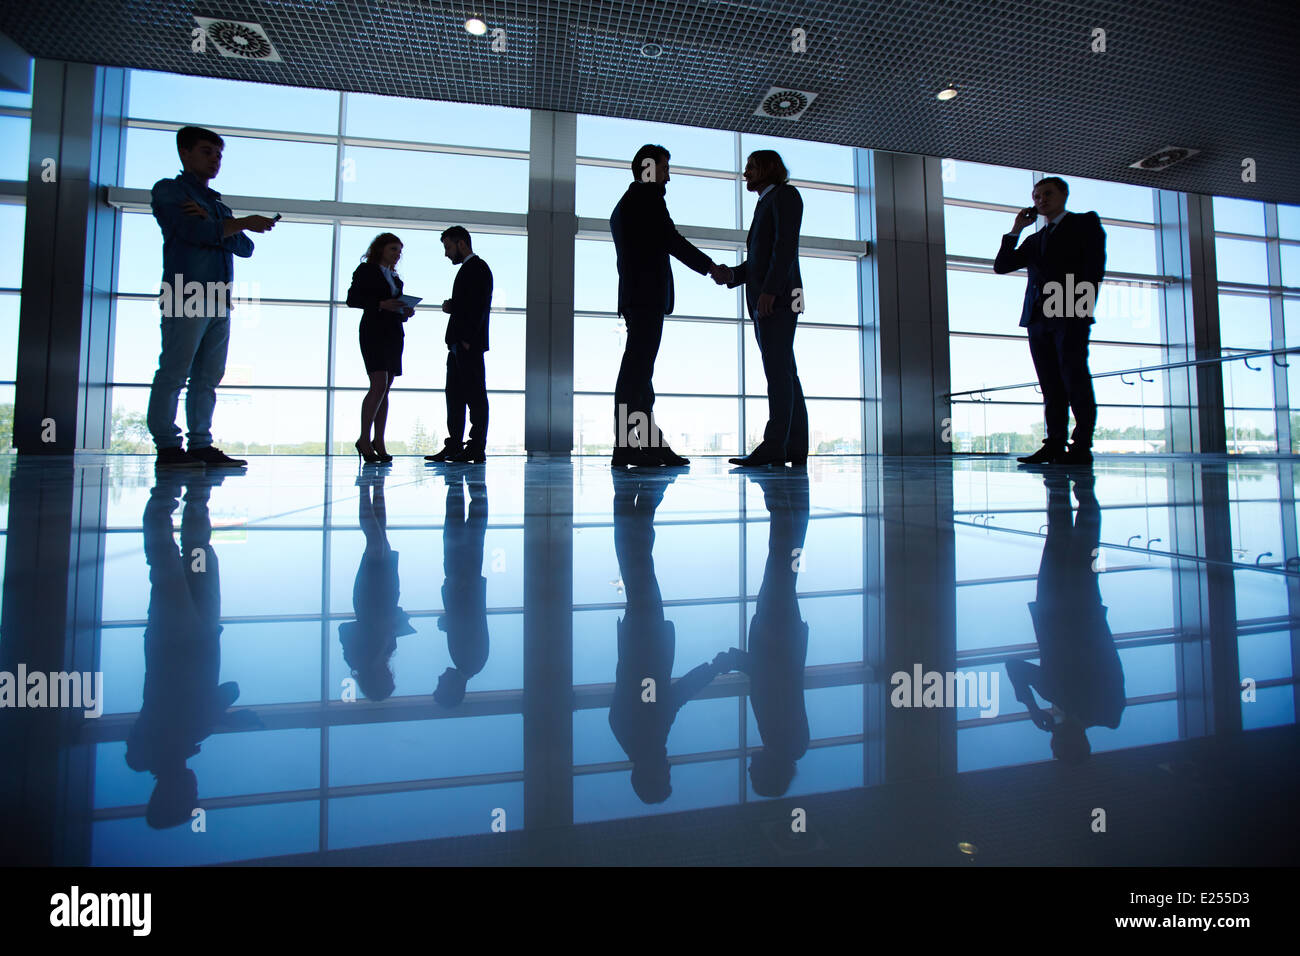 Silhouettes of several office workers working in office - Stock Image